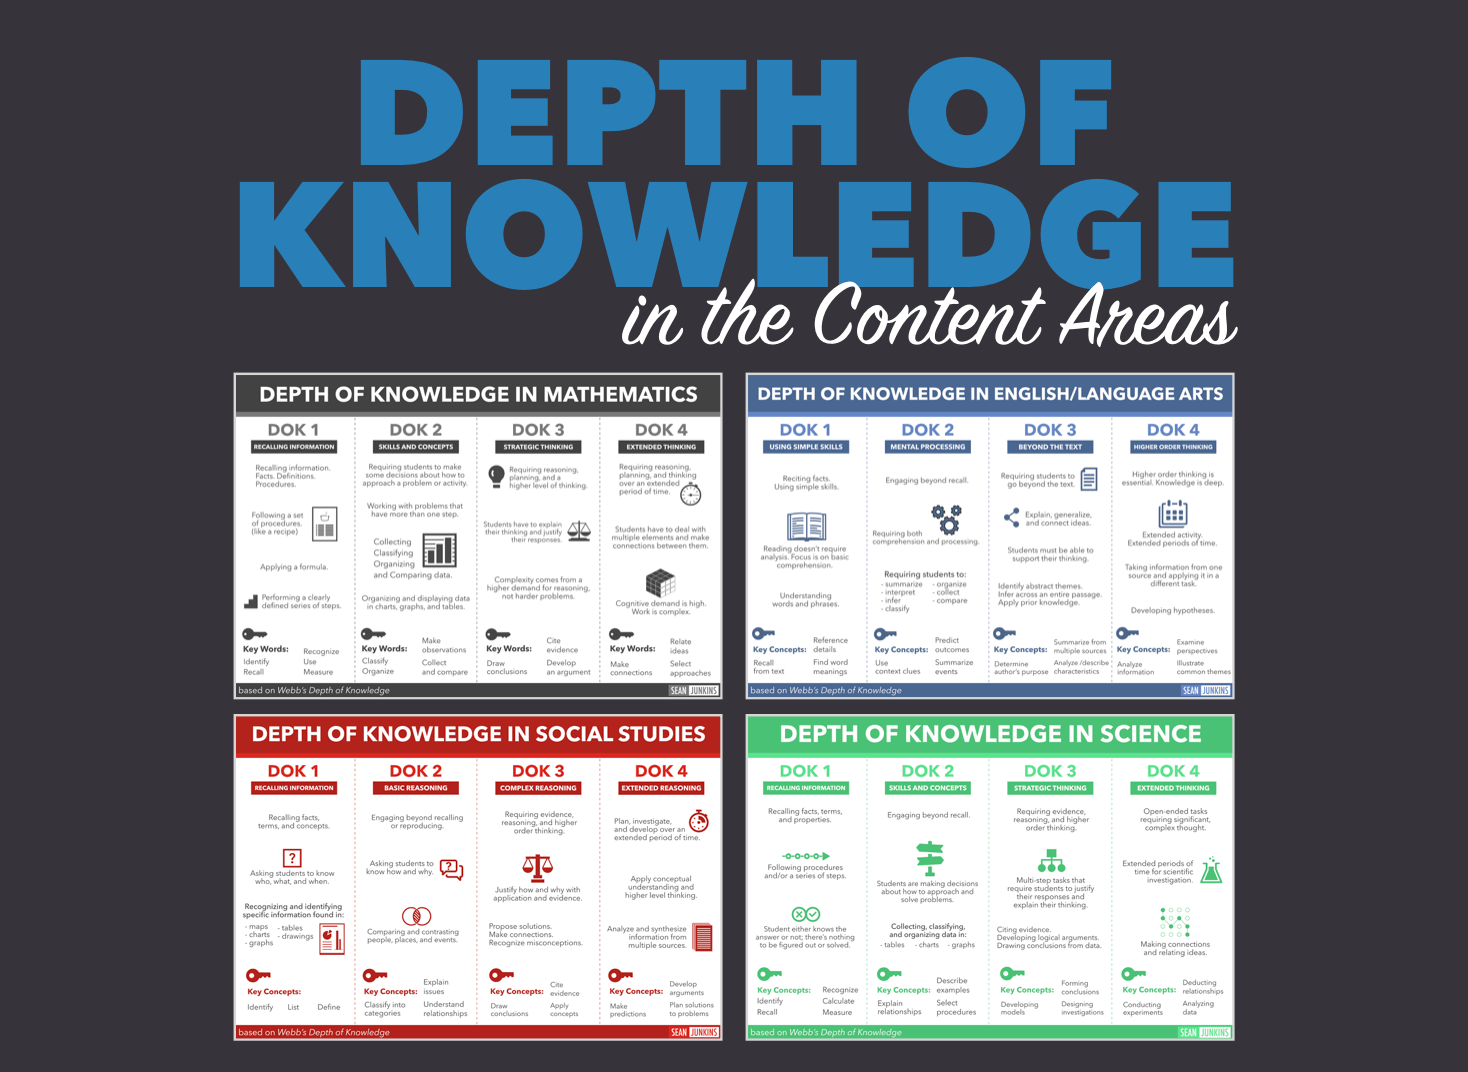 Depth of knowledge in the content areas also seansdesk rh sjunkins wordpress